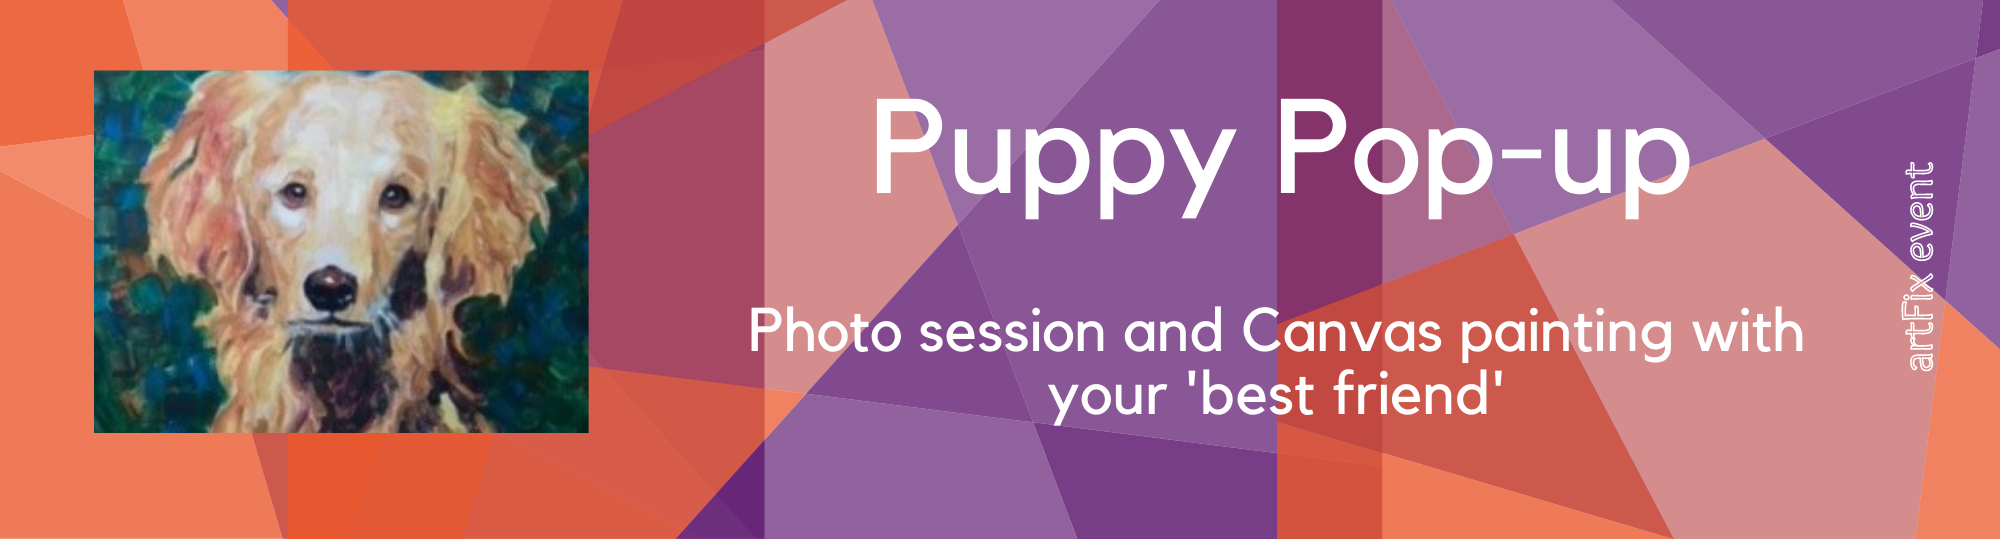 Puppy Pop-up Photo Session